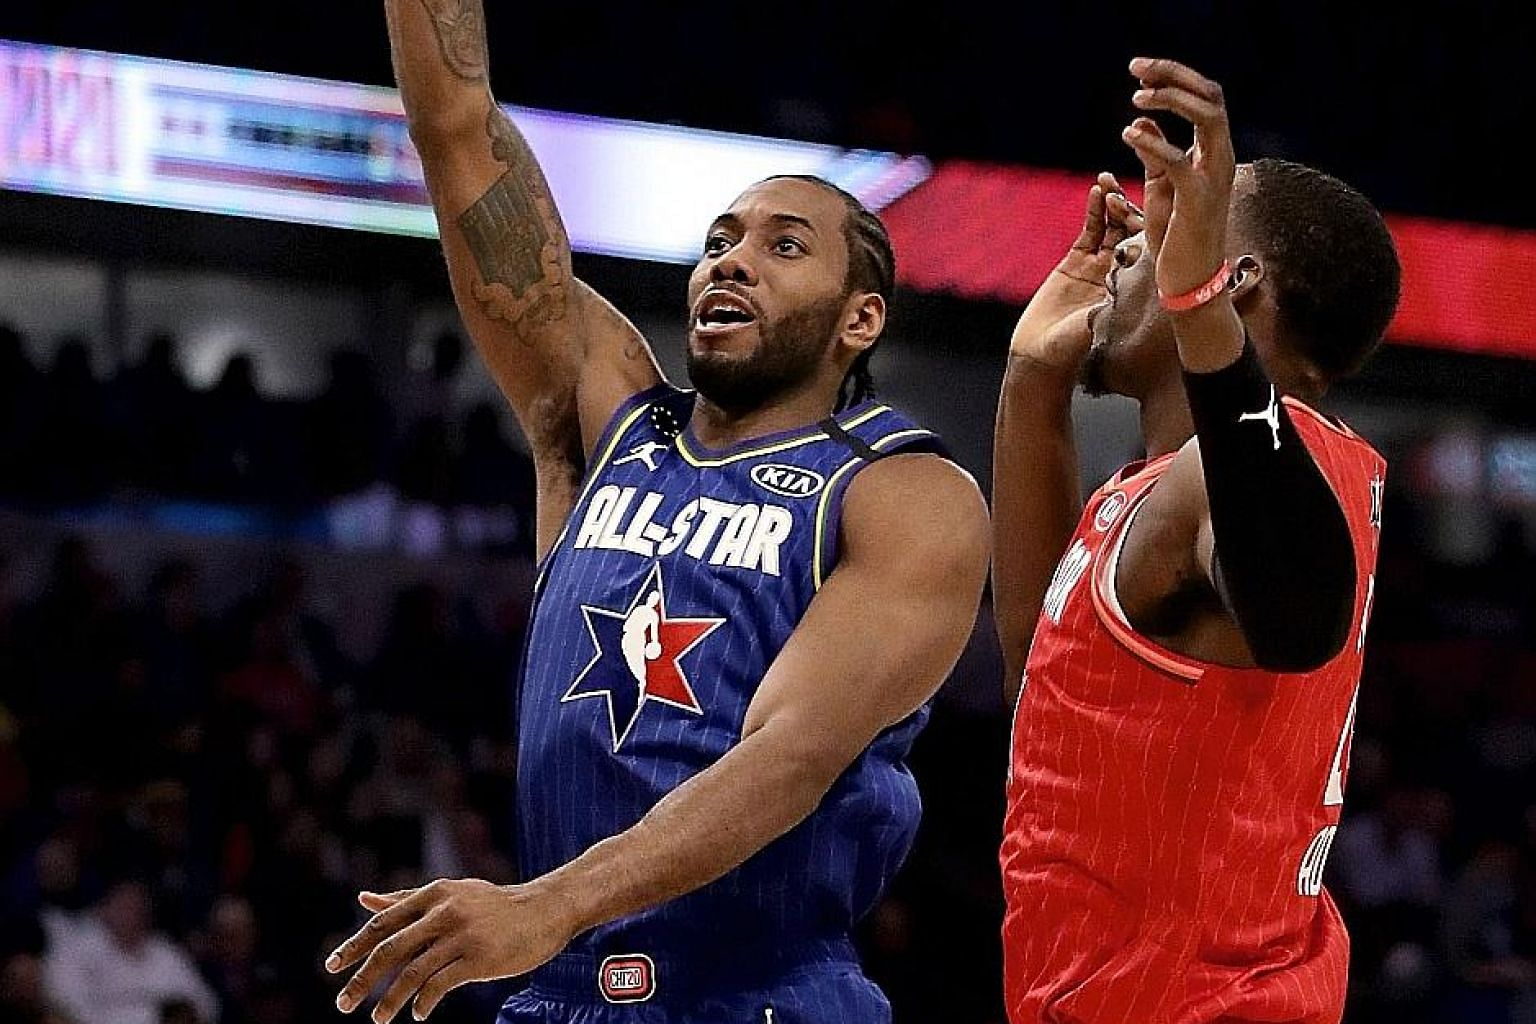 Team LeBron's Kawhi Leonard shooting over Bam Adebayo of Team Giannis during the NBA All-Star Game. Leonard was named the All-Star Most Valuable Player for his game-high 30 points. PHOTO: AGENCE FRANCE-PRESSE